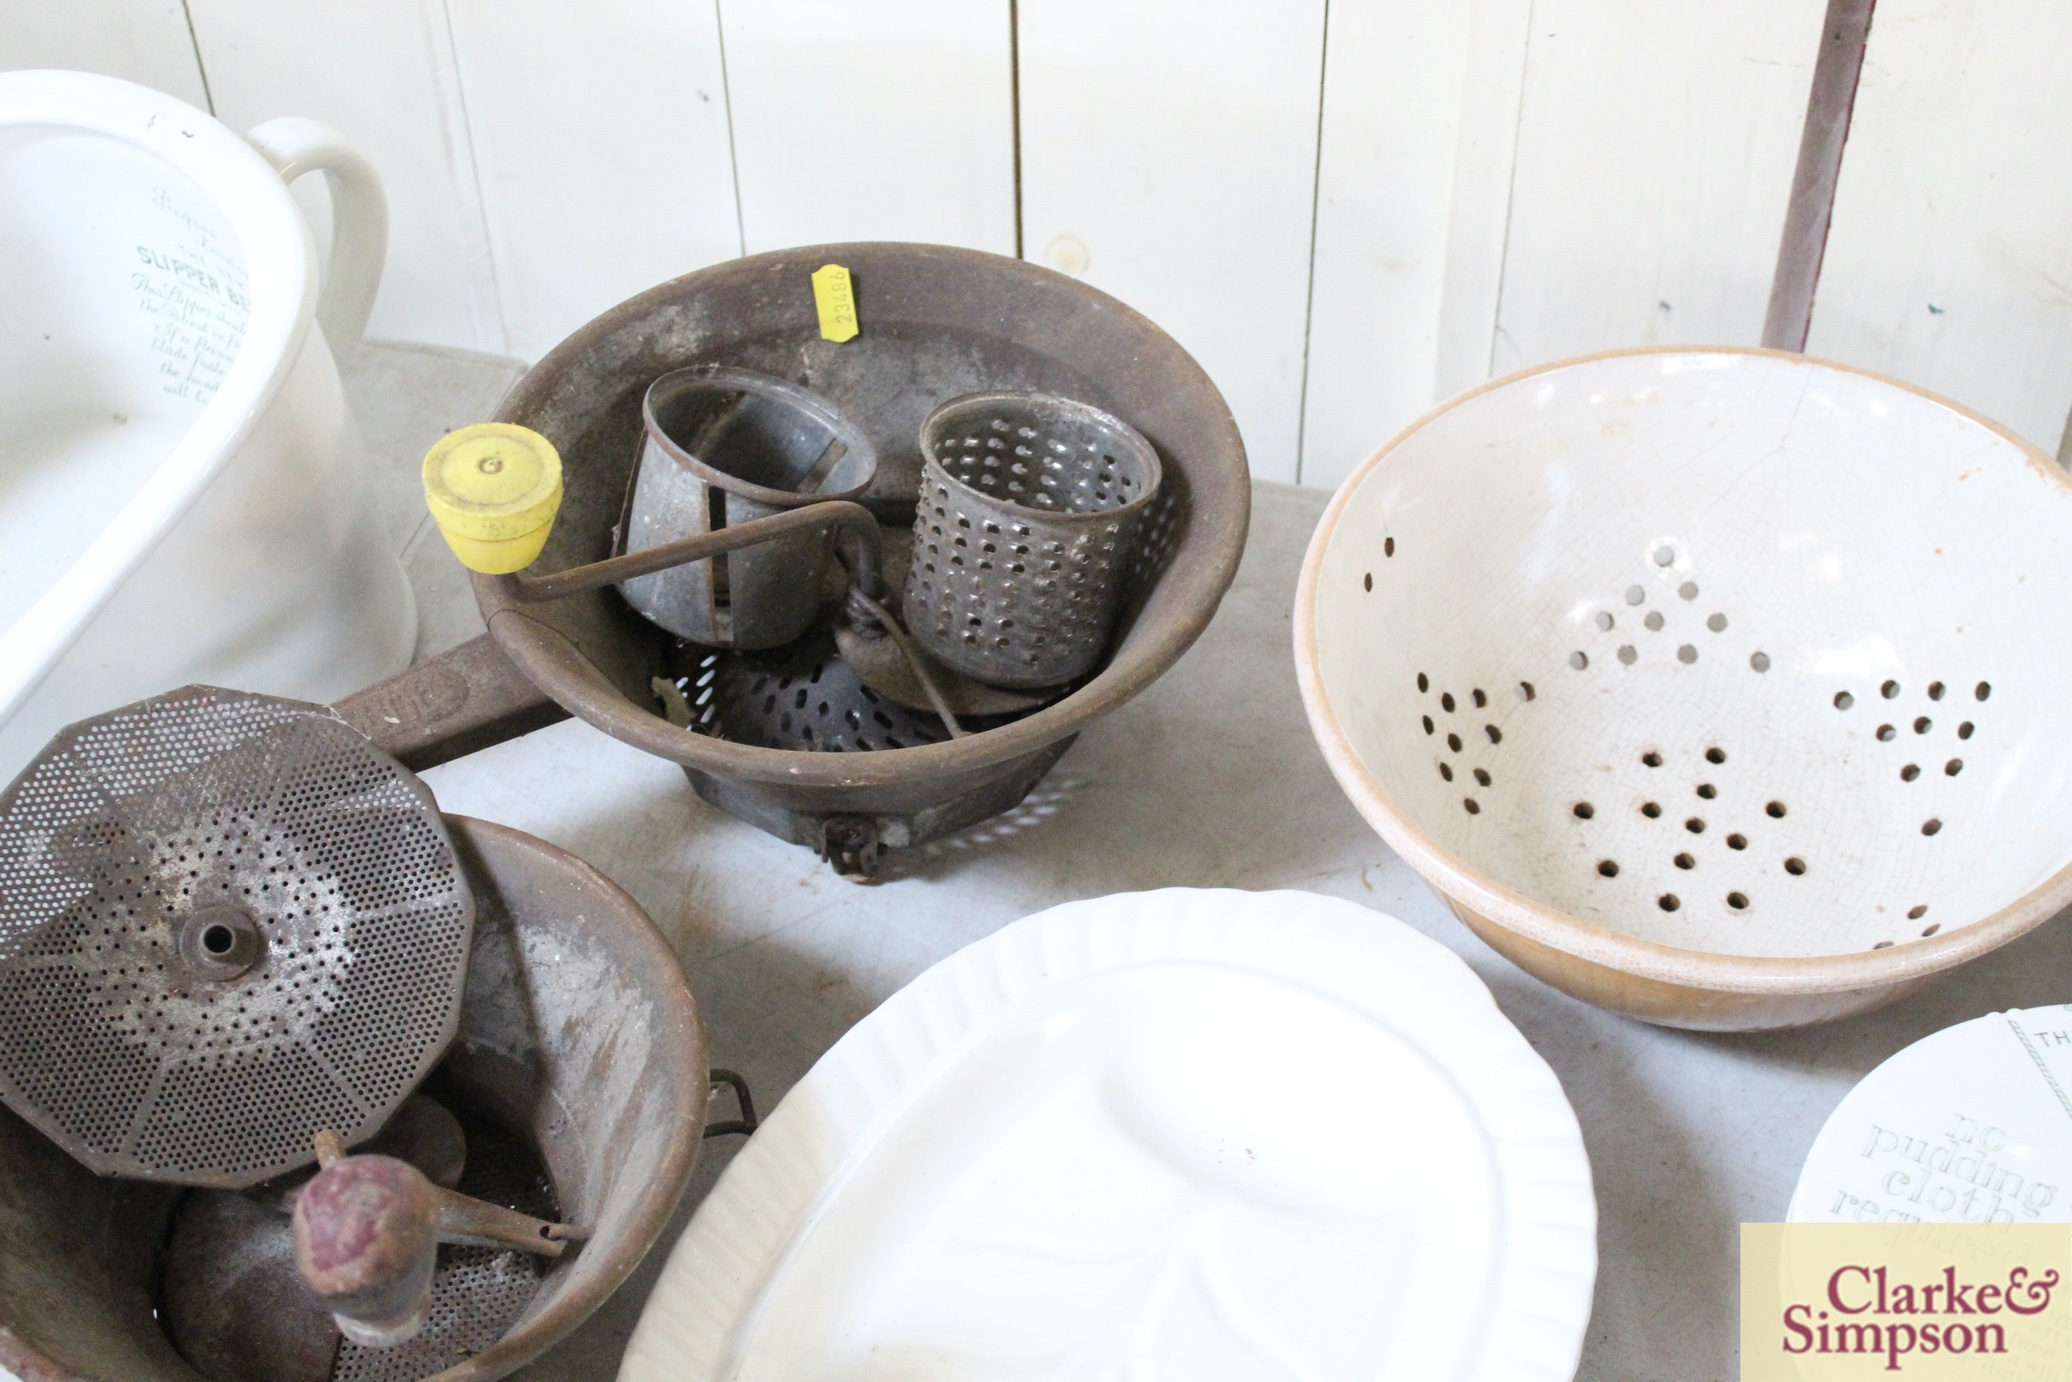 A quantity of various kitchenalia including a quic - Image 3 of 5